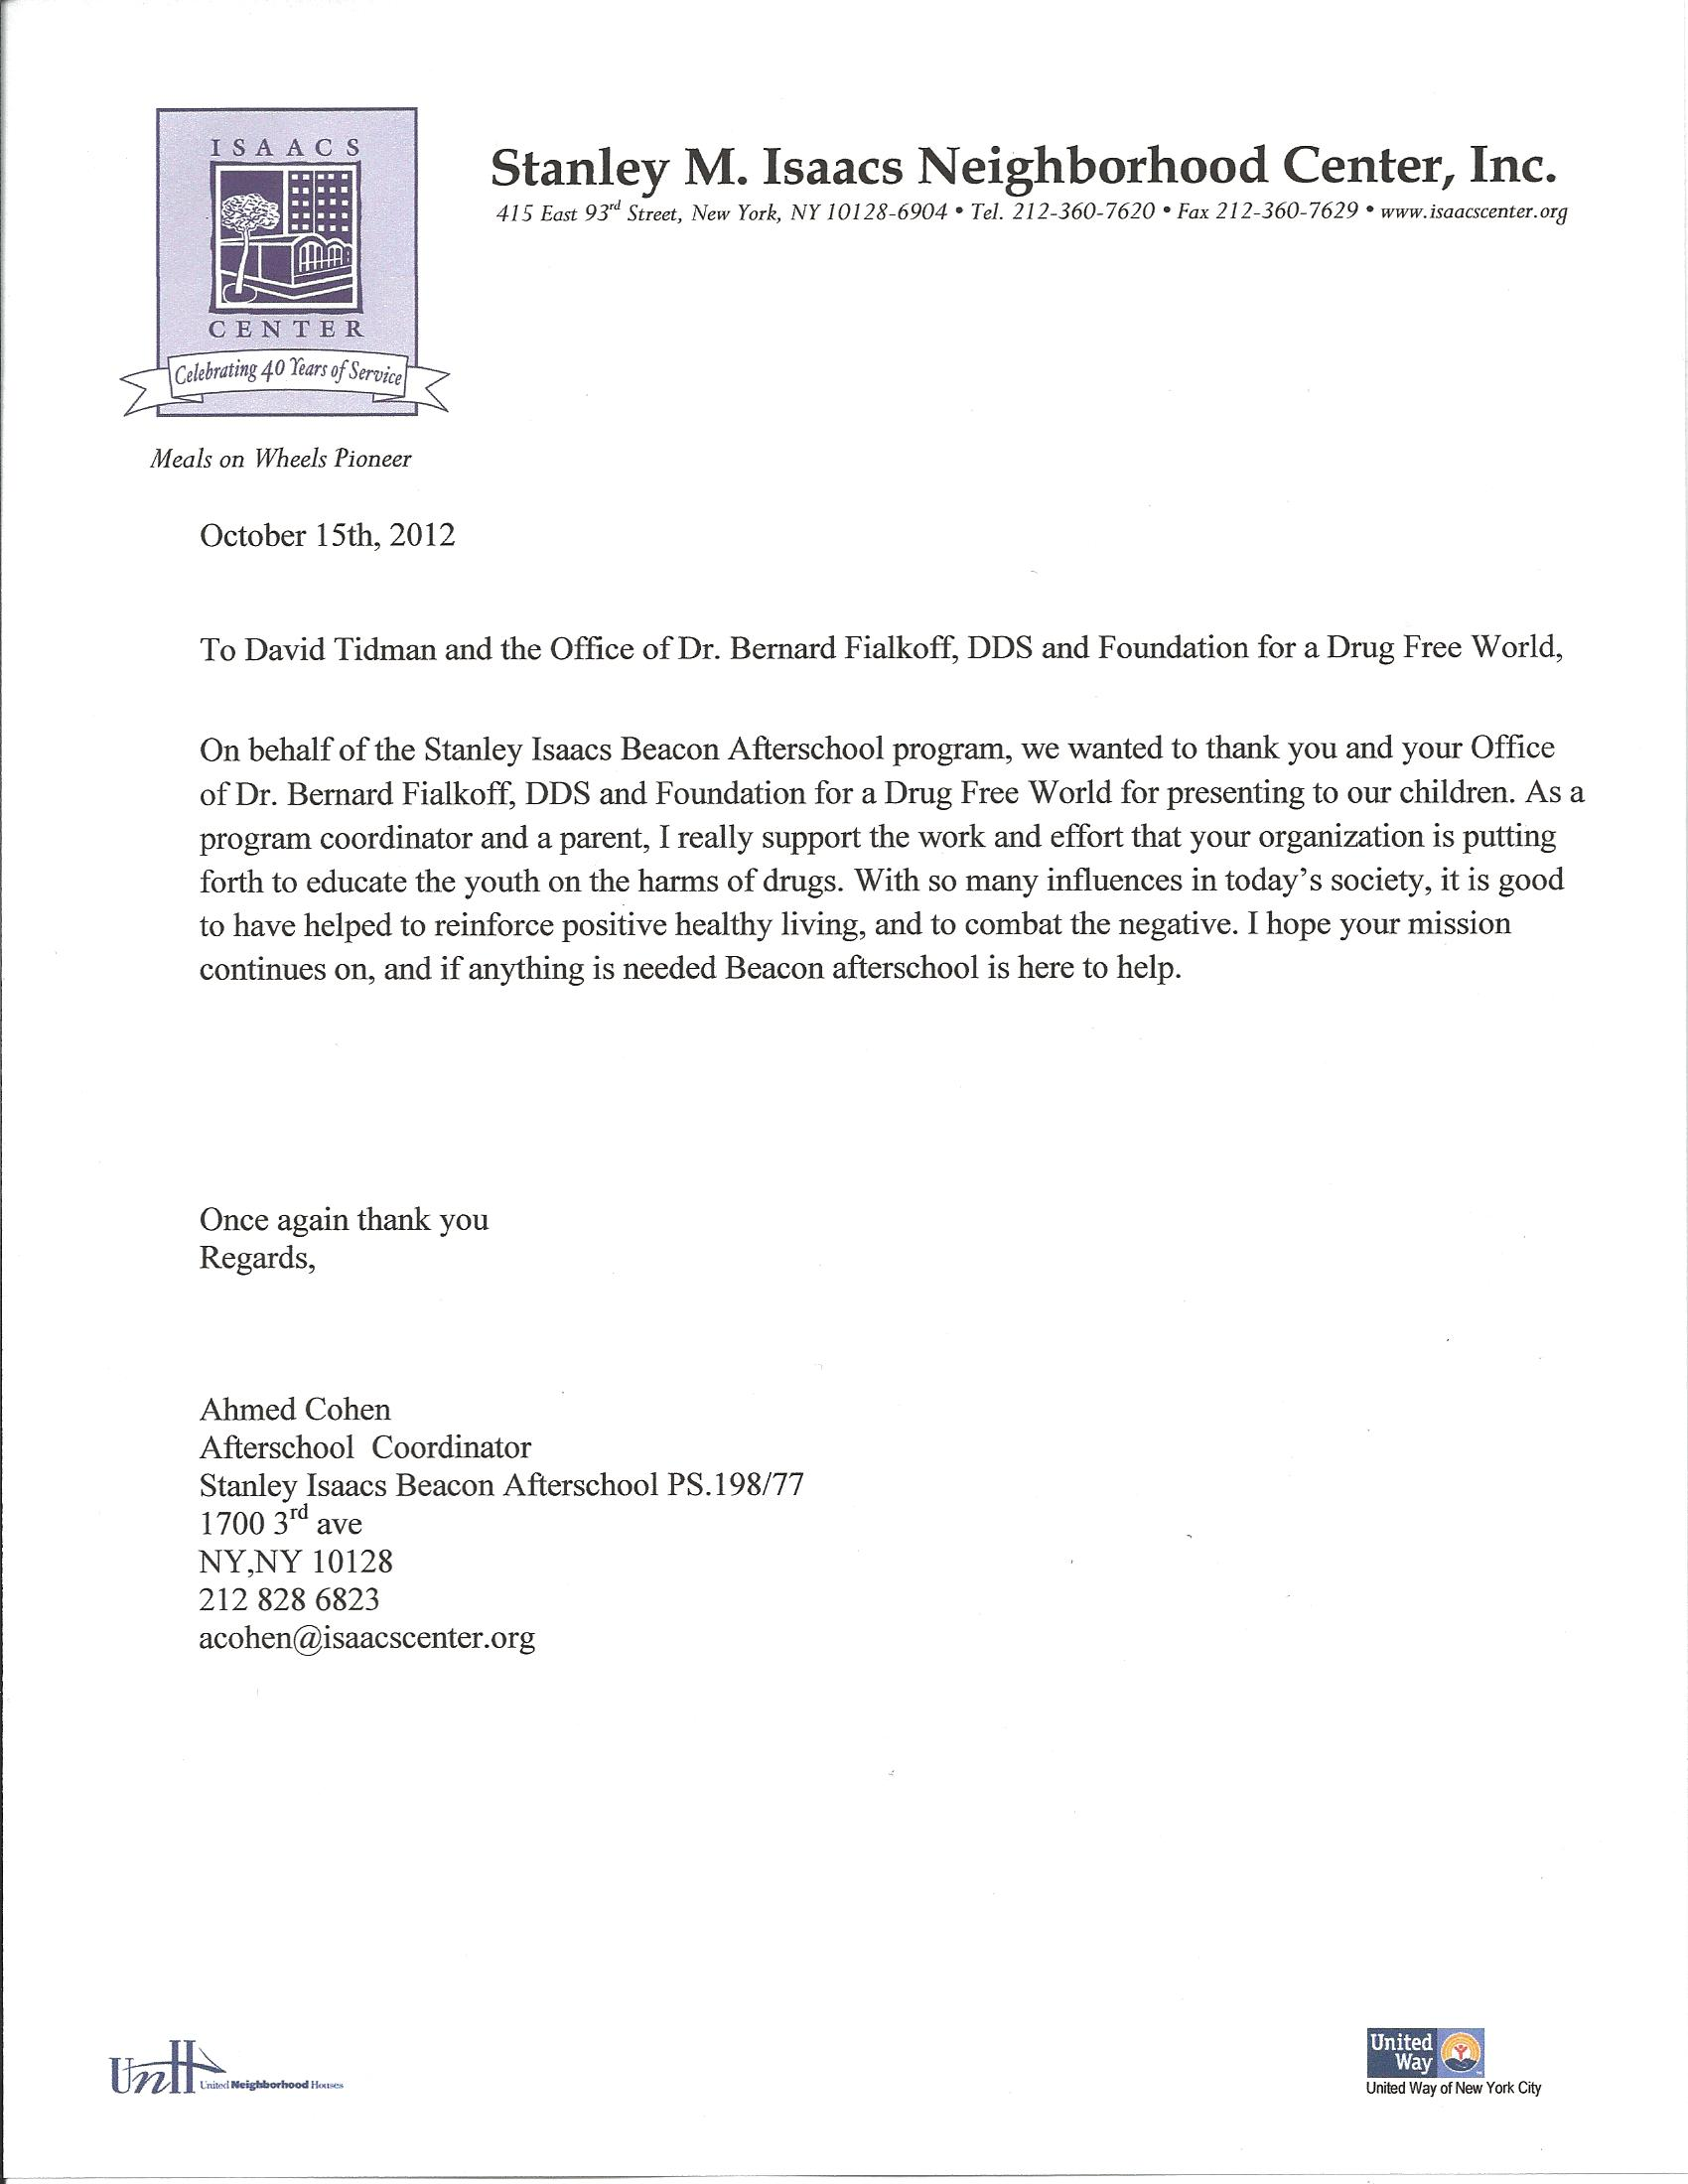 Thank You Referral Letter from baysidedentist.com